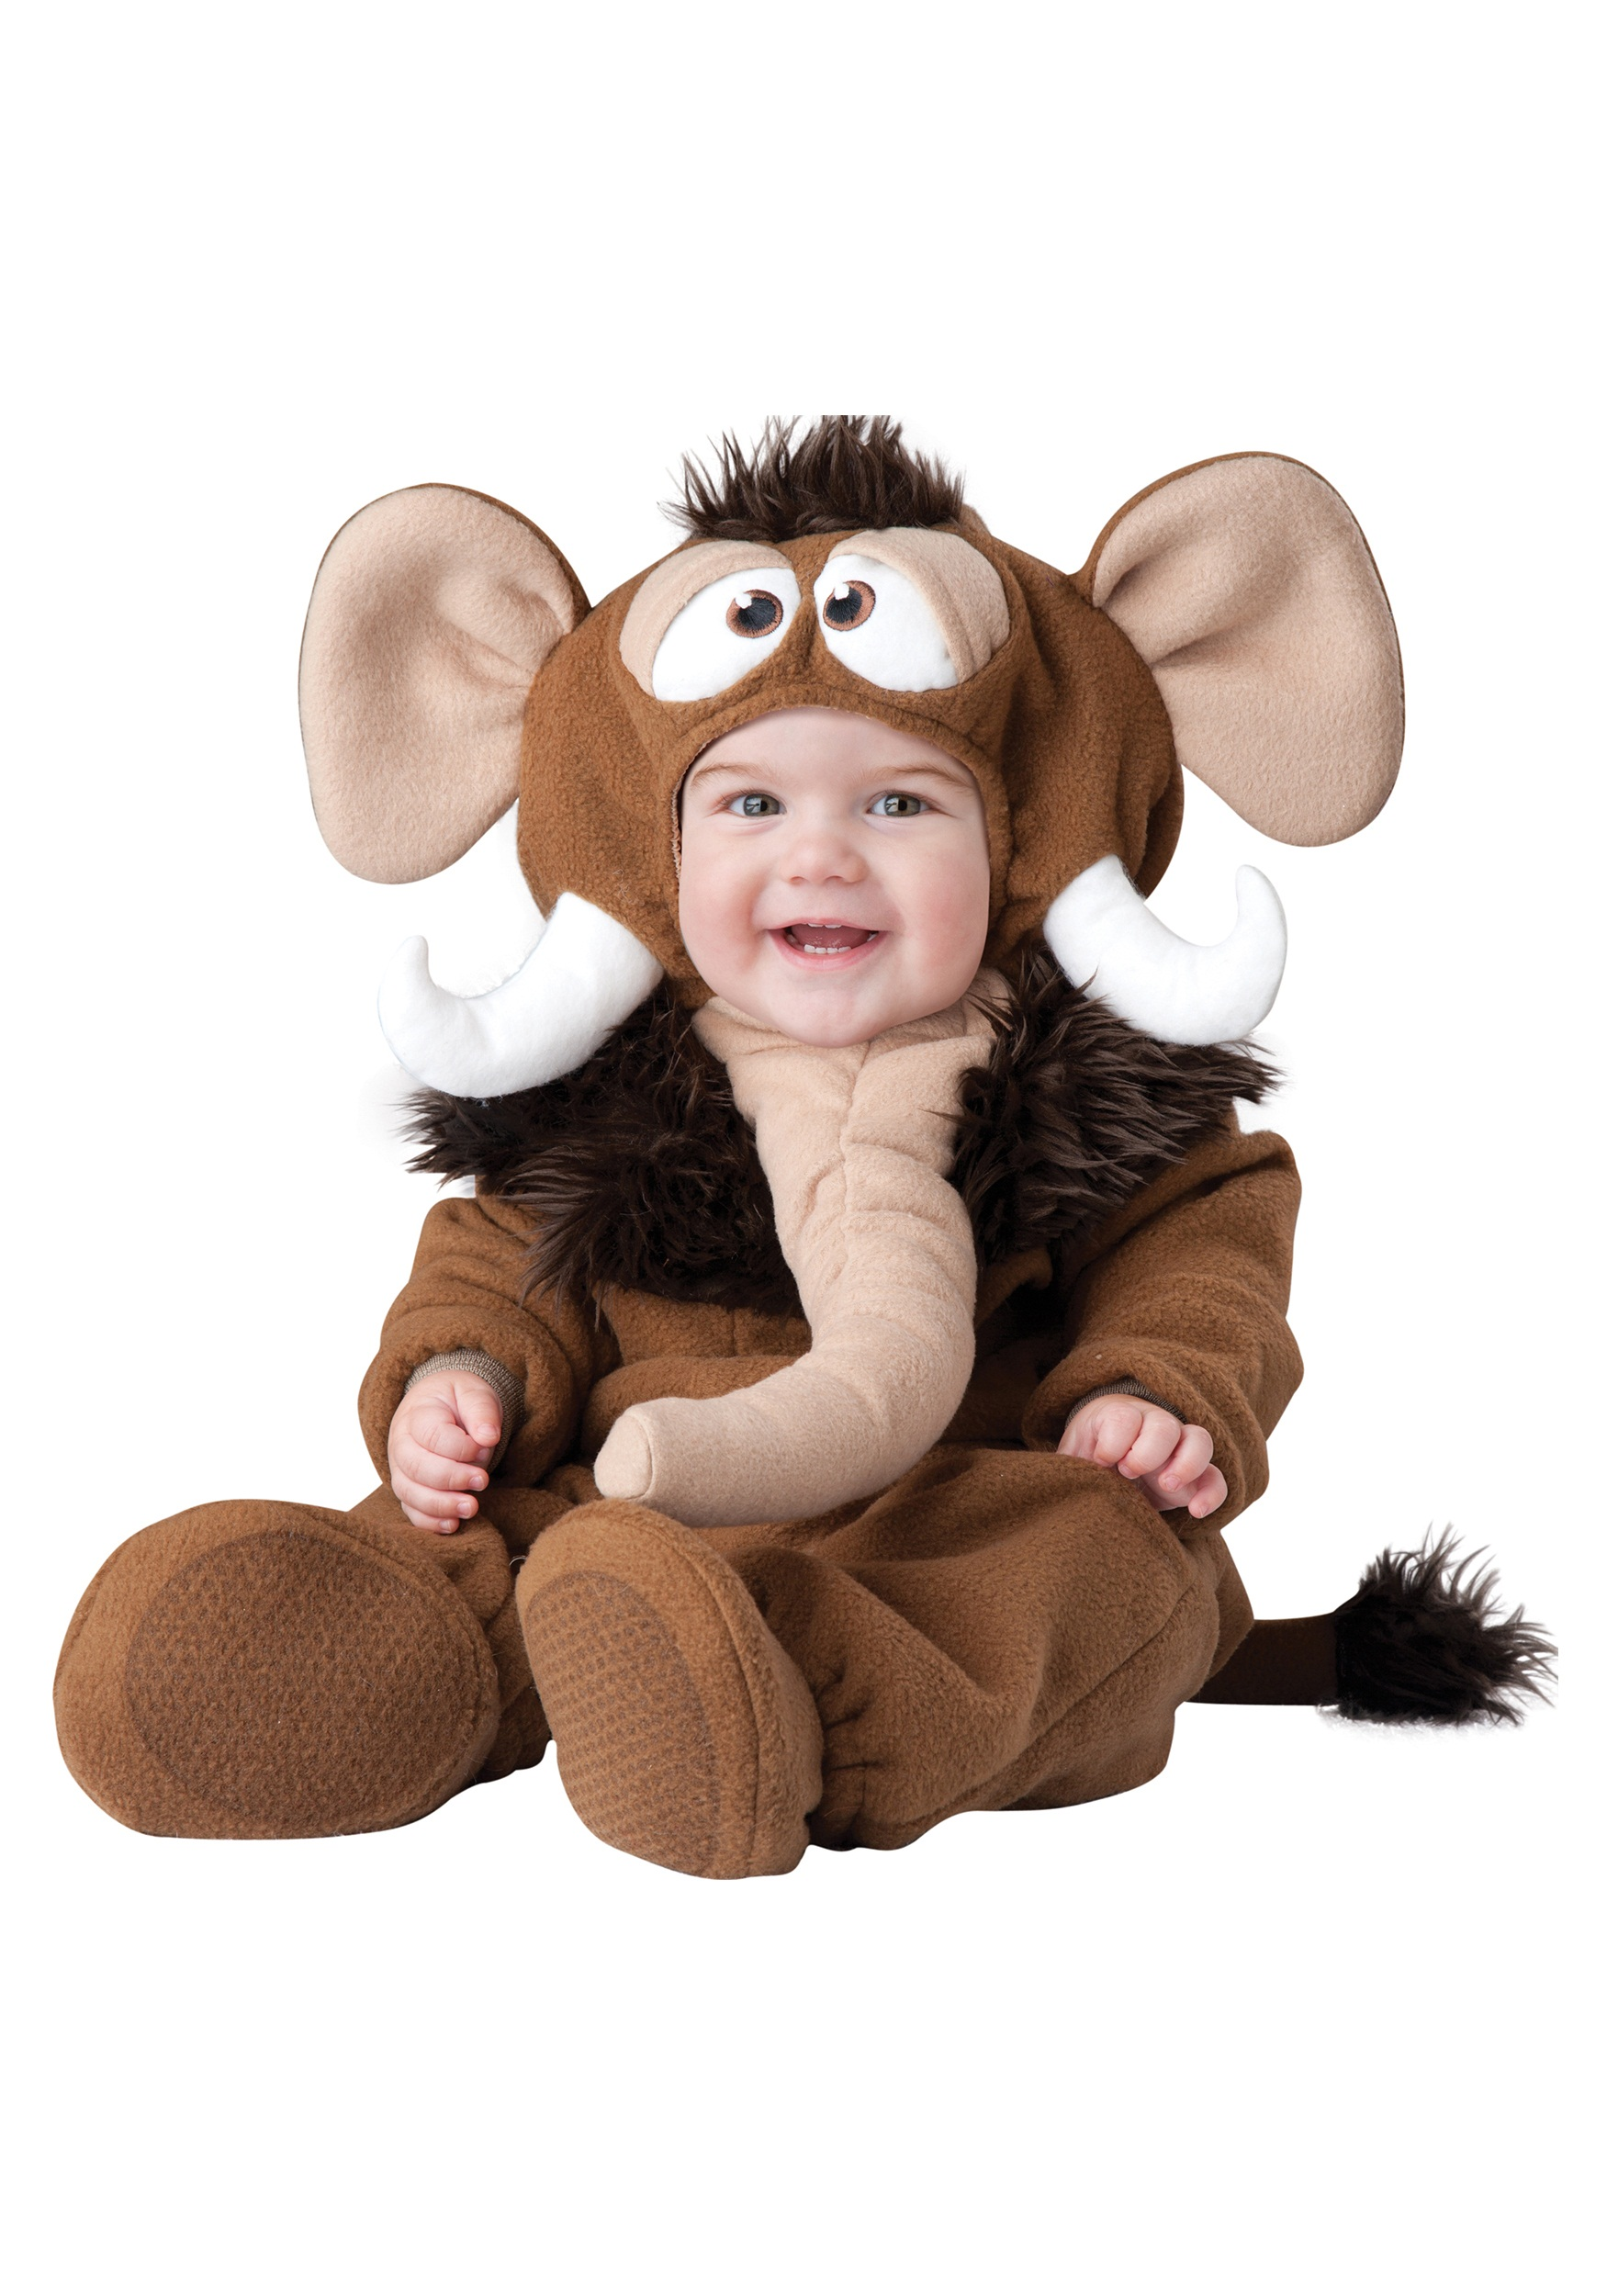 Wee Wooly Mammoth Infant Costume  sc 1 st  Halloween Costumes & Wee Wooly Mammoth Infant Costume - Halloween Costumes